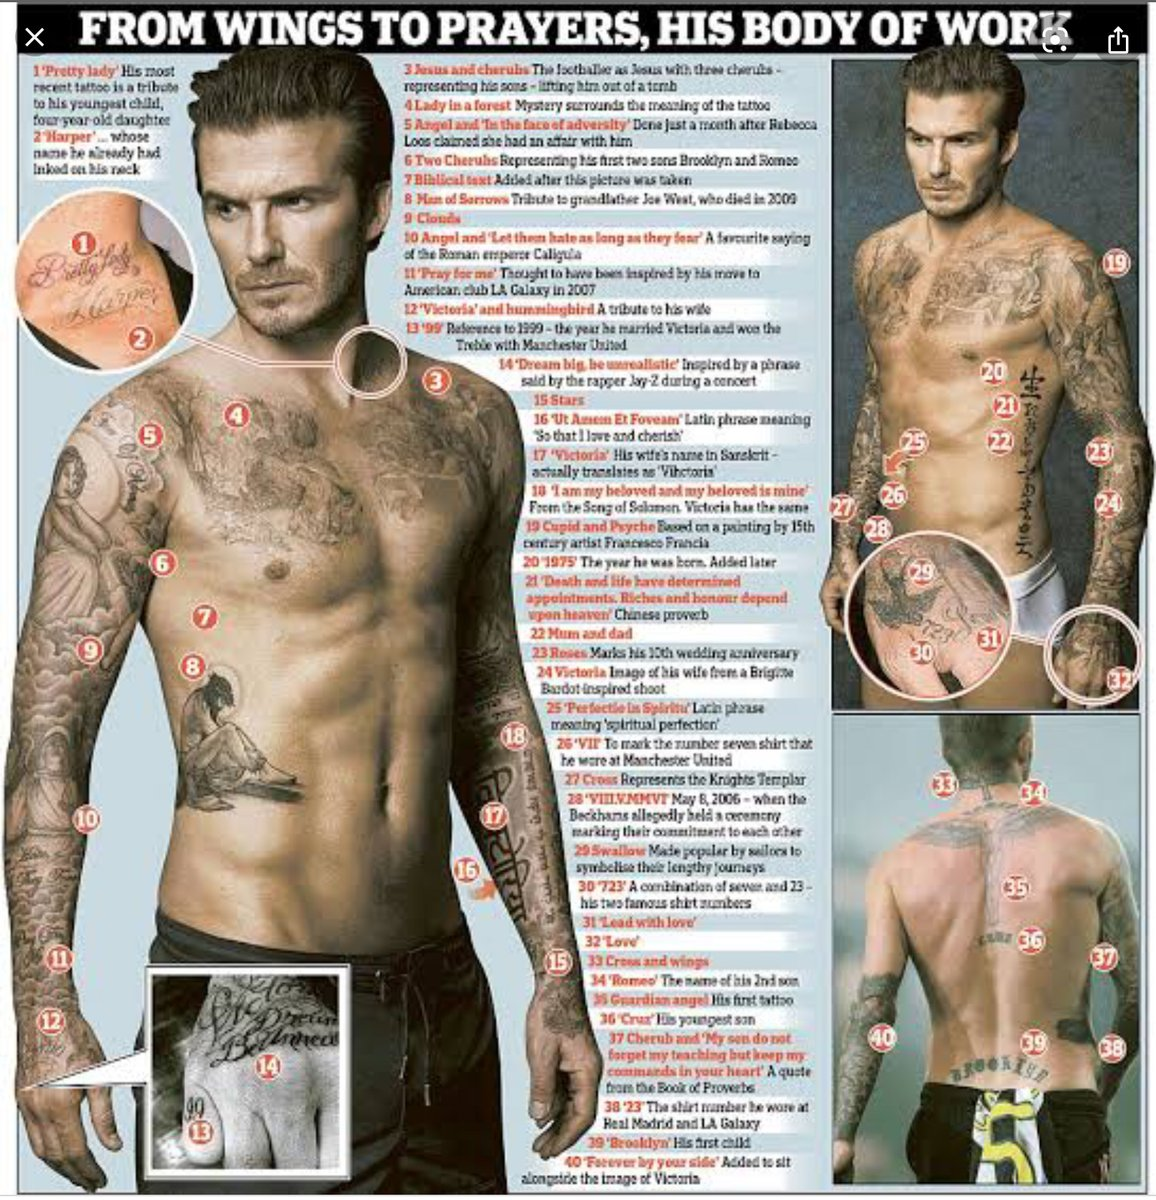 Amazing #multilingual body!   #DavidBeckham's tattoos provide enough data for an academic paper in #LinguisticLandscape research ...    #Chinese #Devanagari #English #Hebrew #Latin